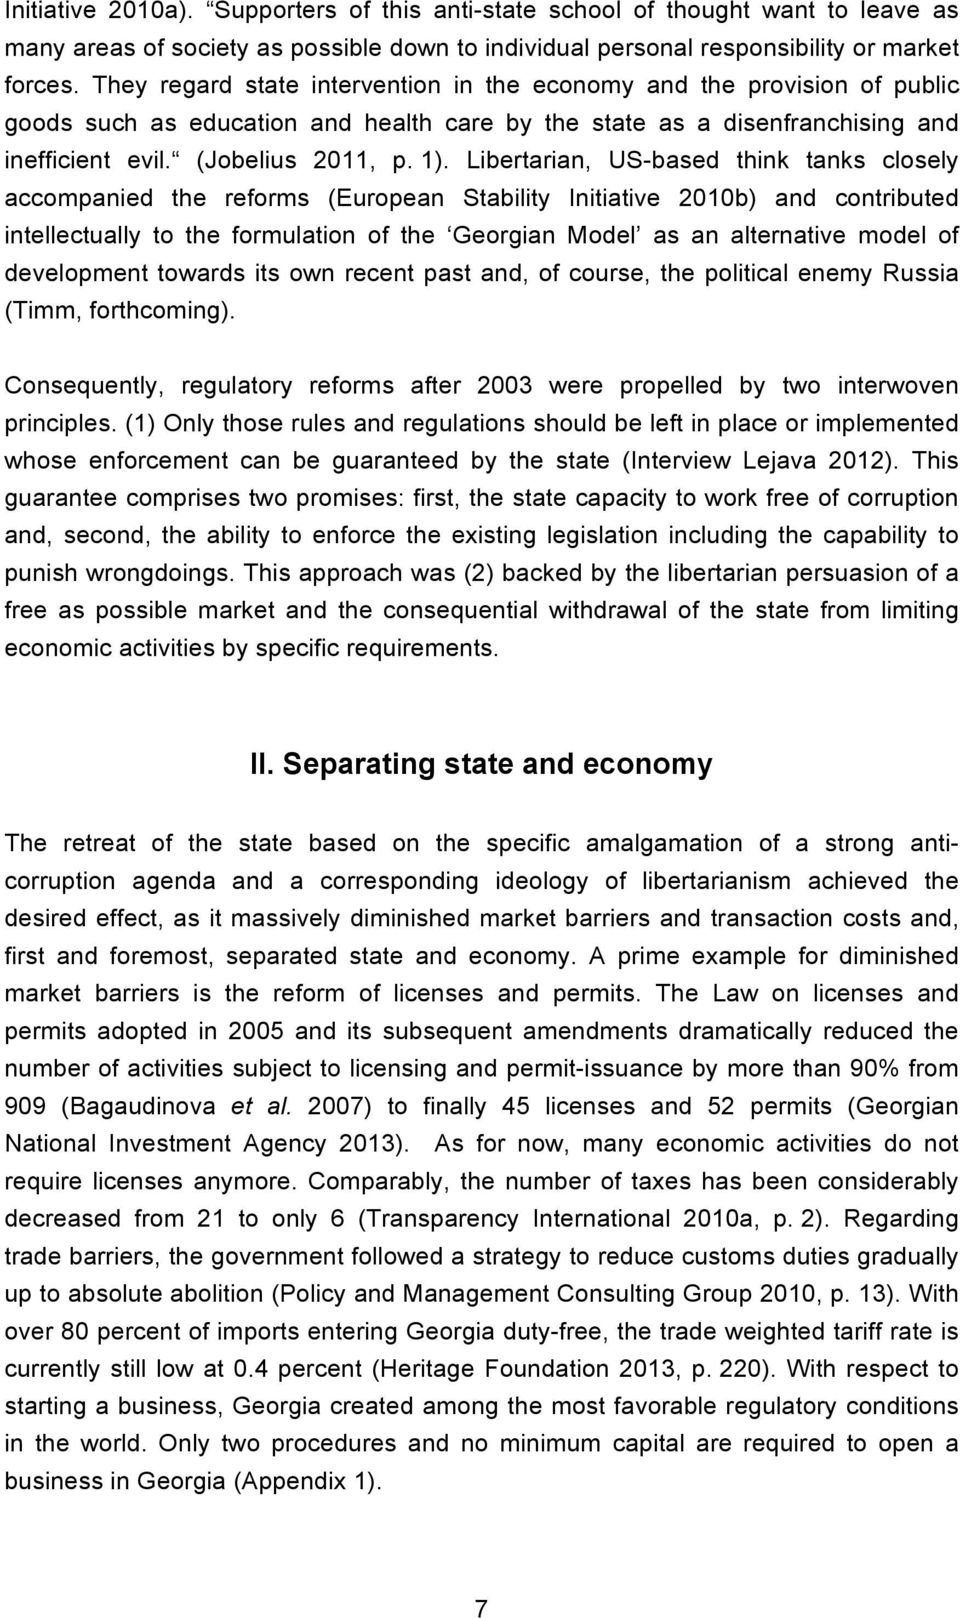 Libertarian, US-based think tanks closely accompanied the reforms (European Stability Initiative 2010b) and contributed intellectually to the formulation of the Georgian Model as an alternative model